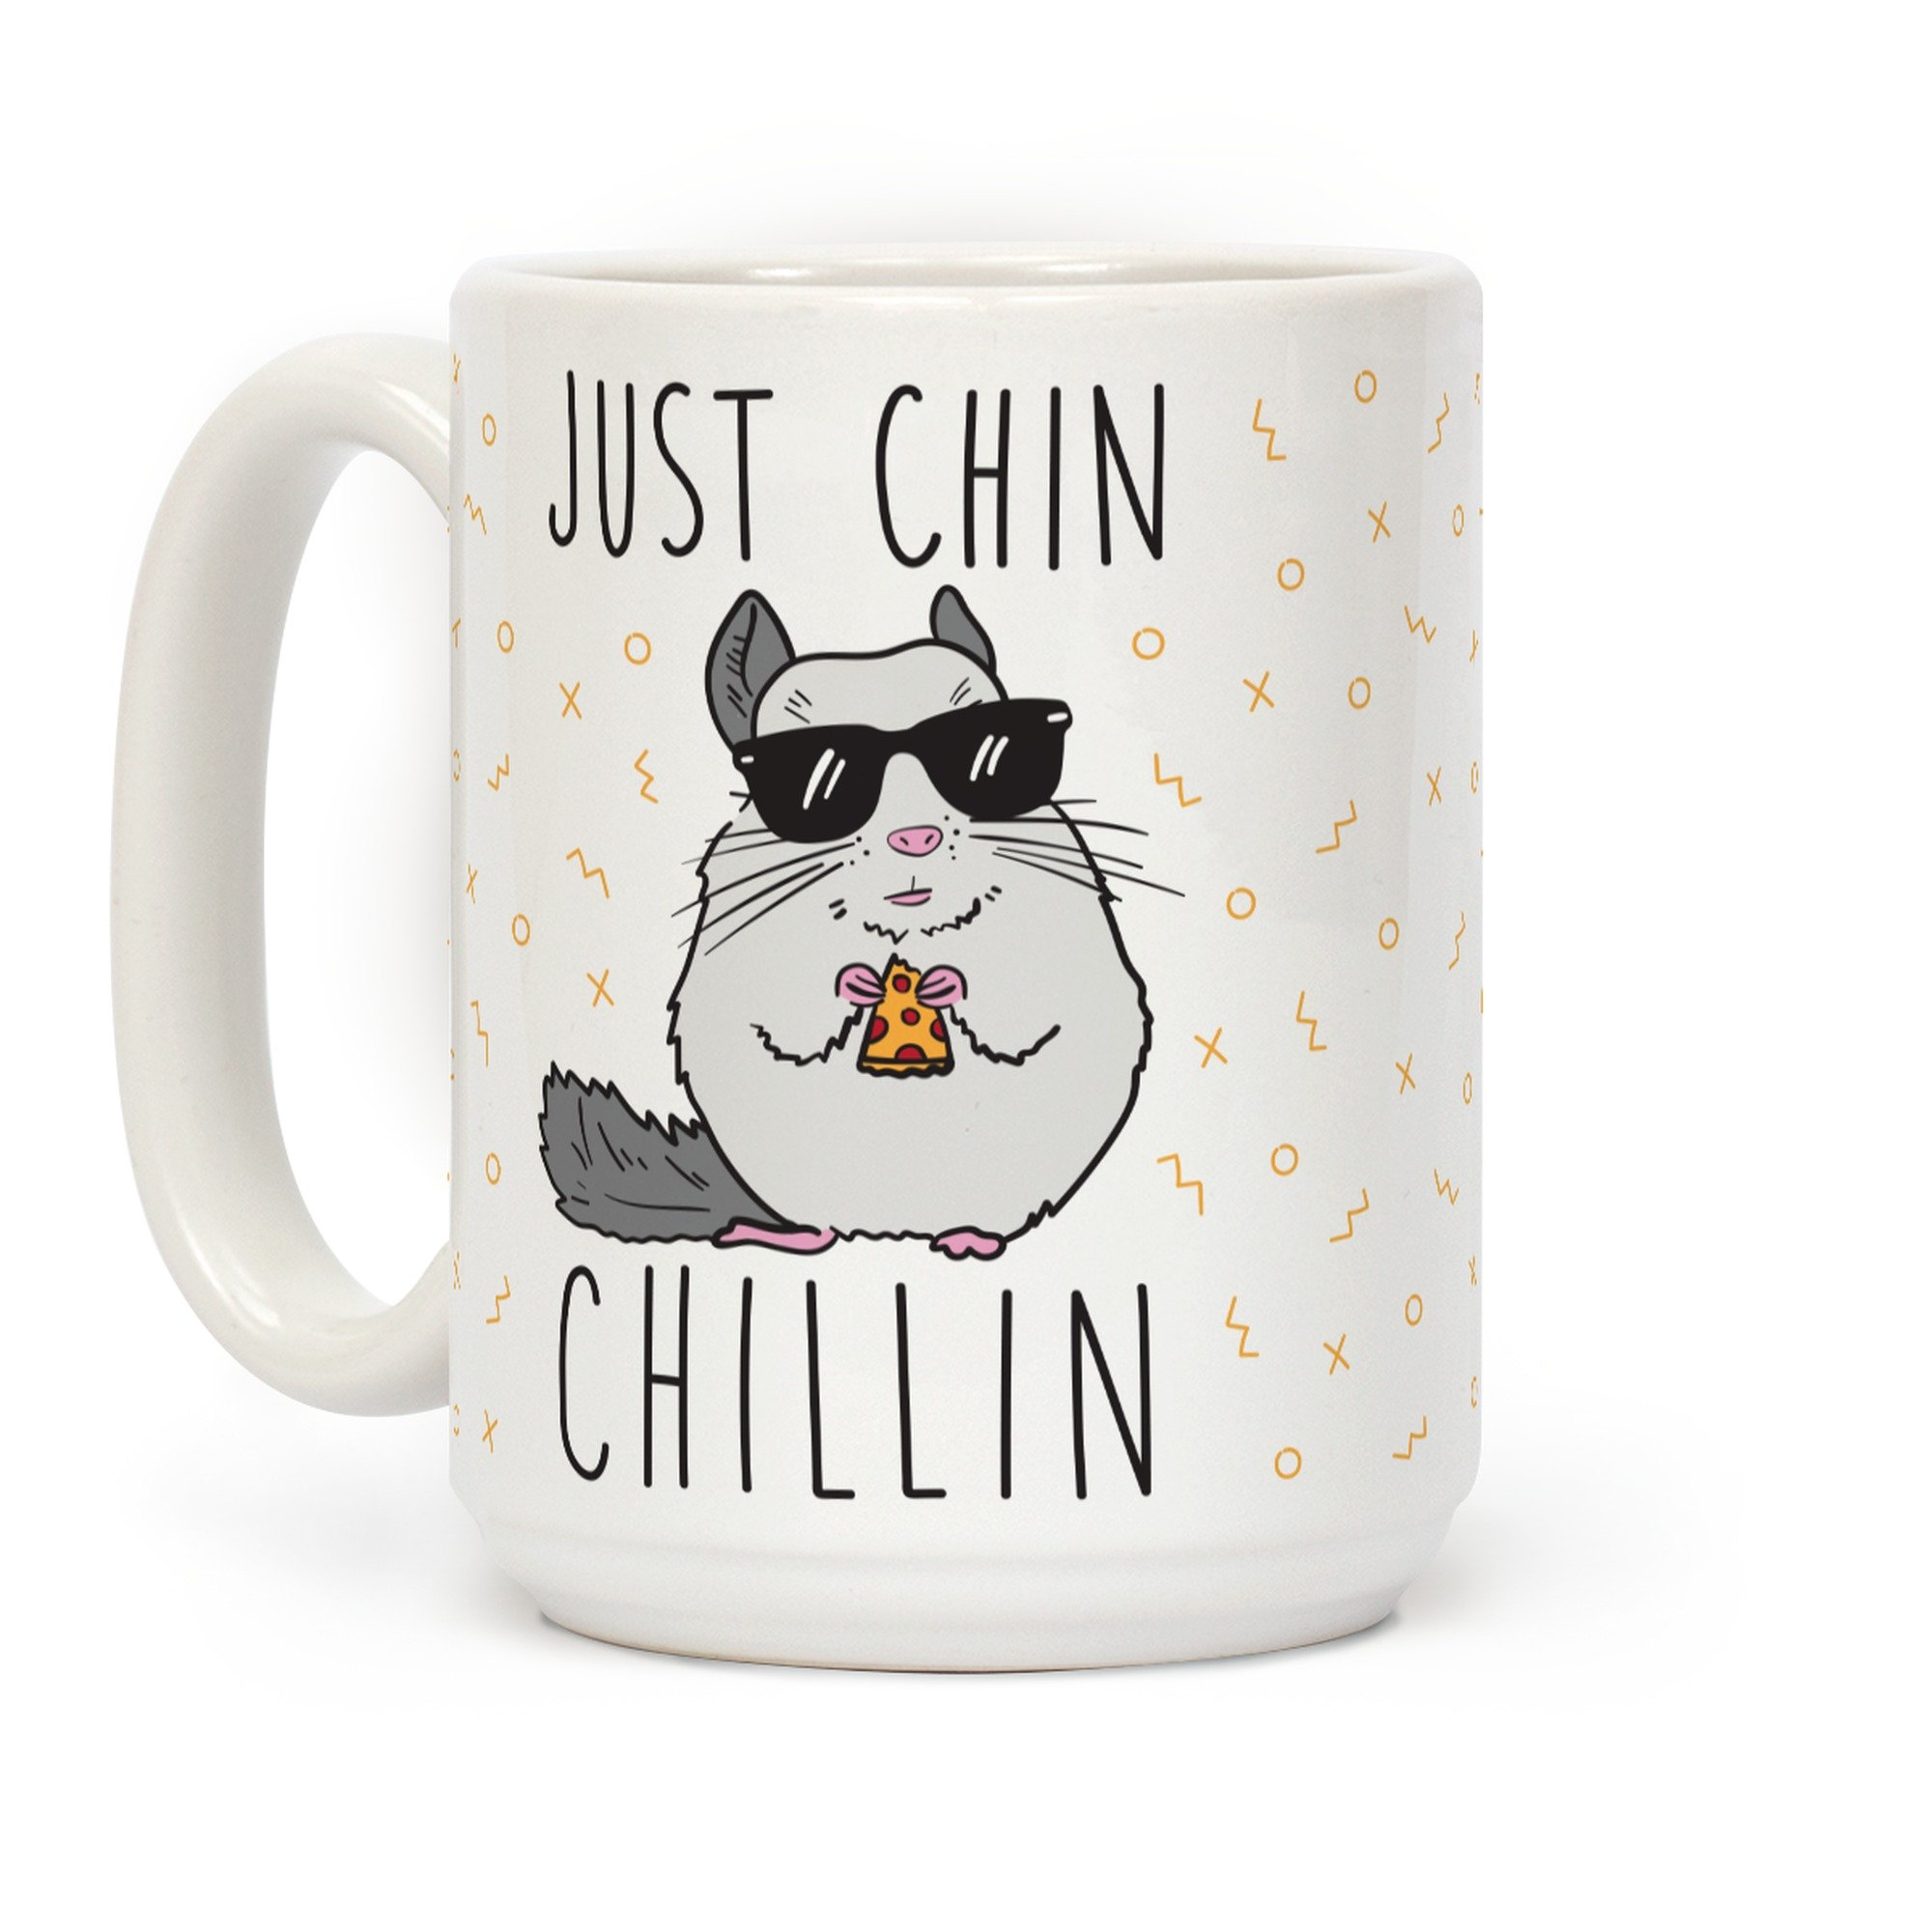 Just Chin-Chillin White 15 Ounce Ceramic Coffee Mug by LookHUMAN